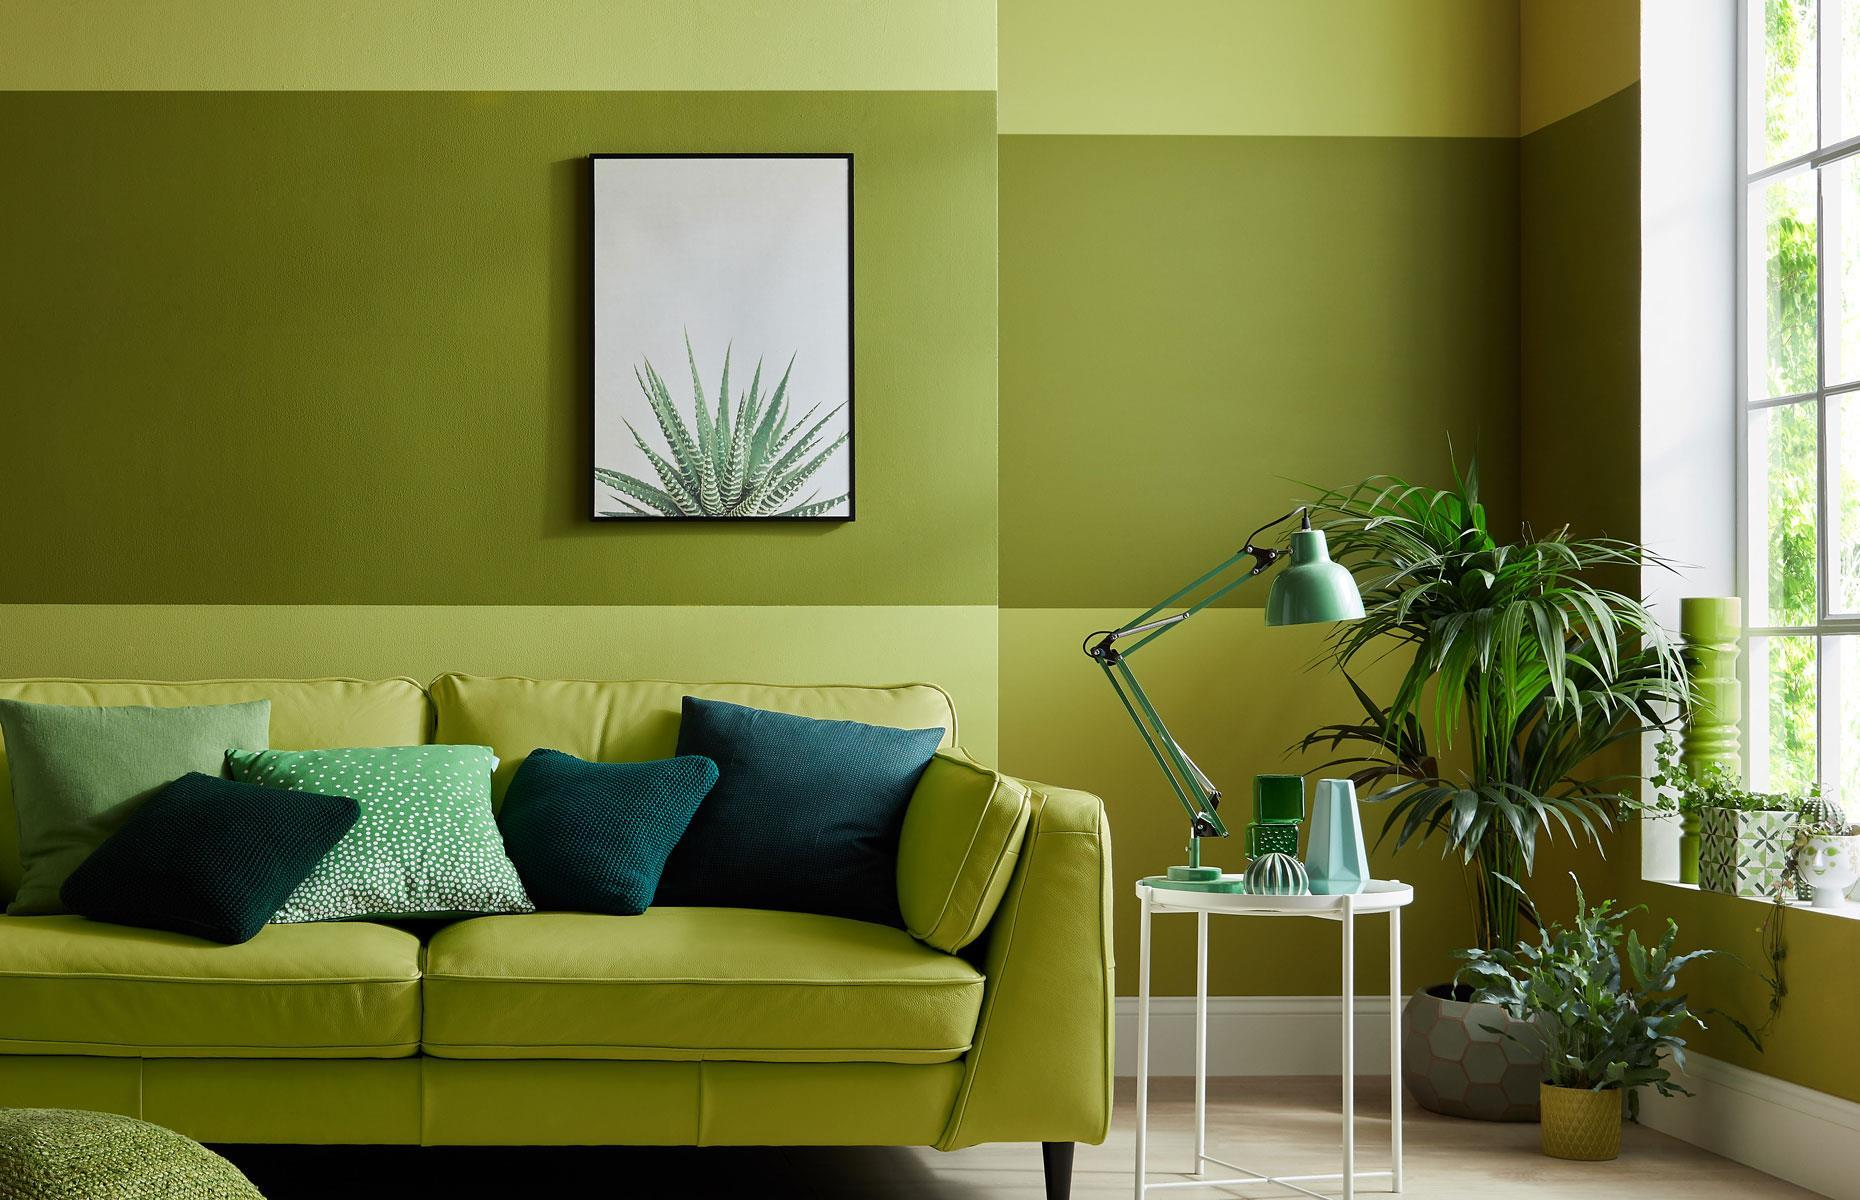 Green decor be inspired by these fresh decorating ideas ...